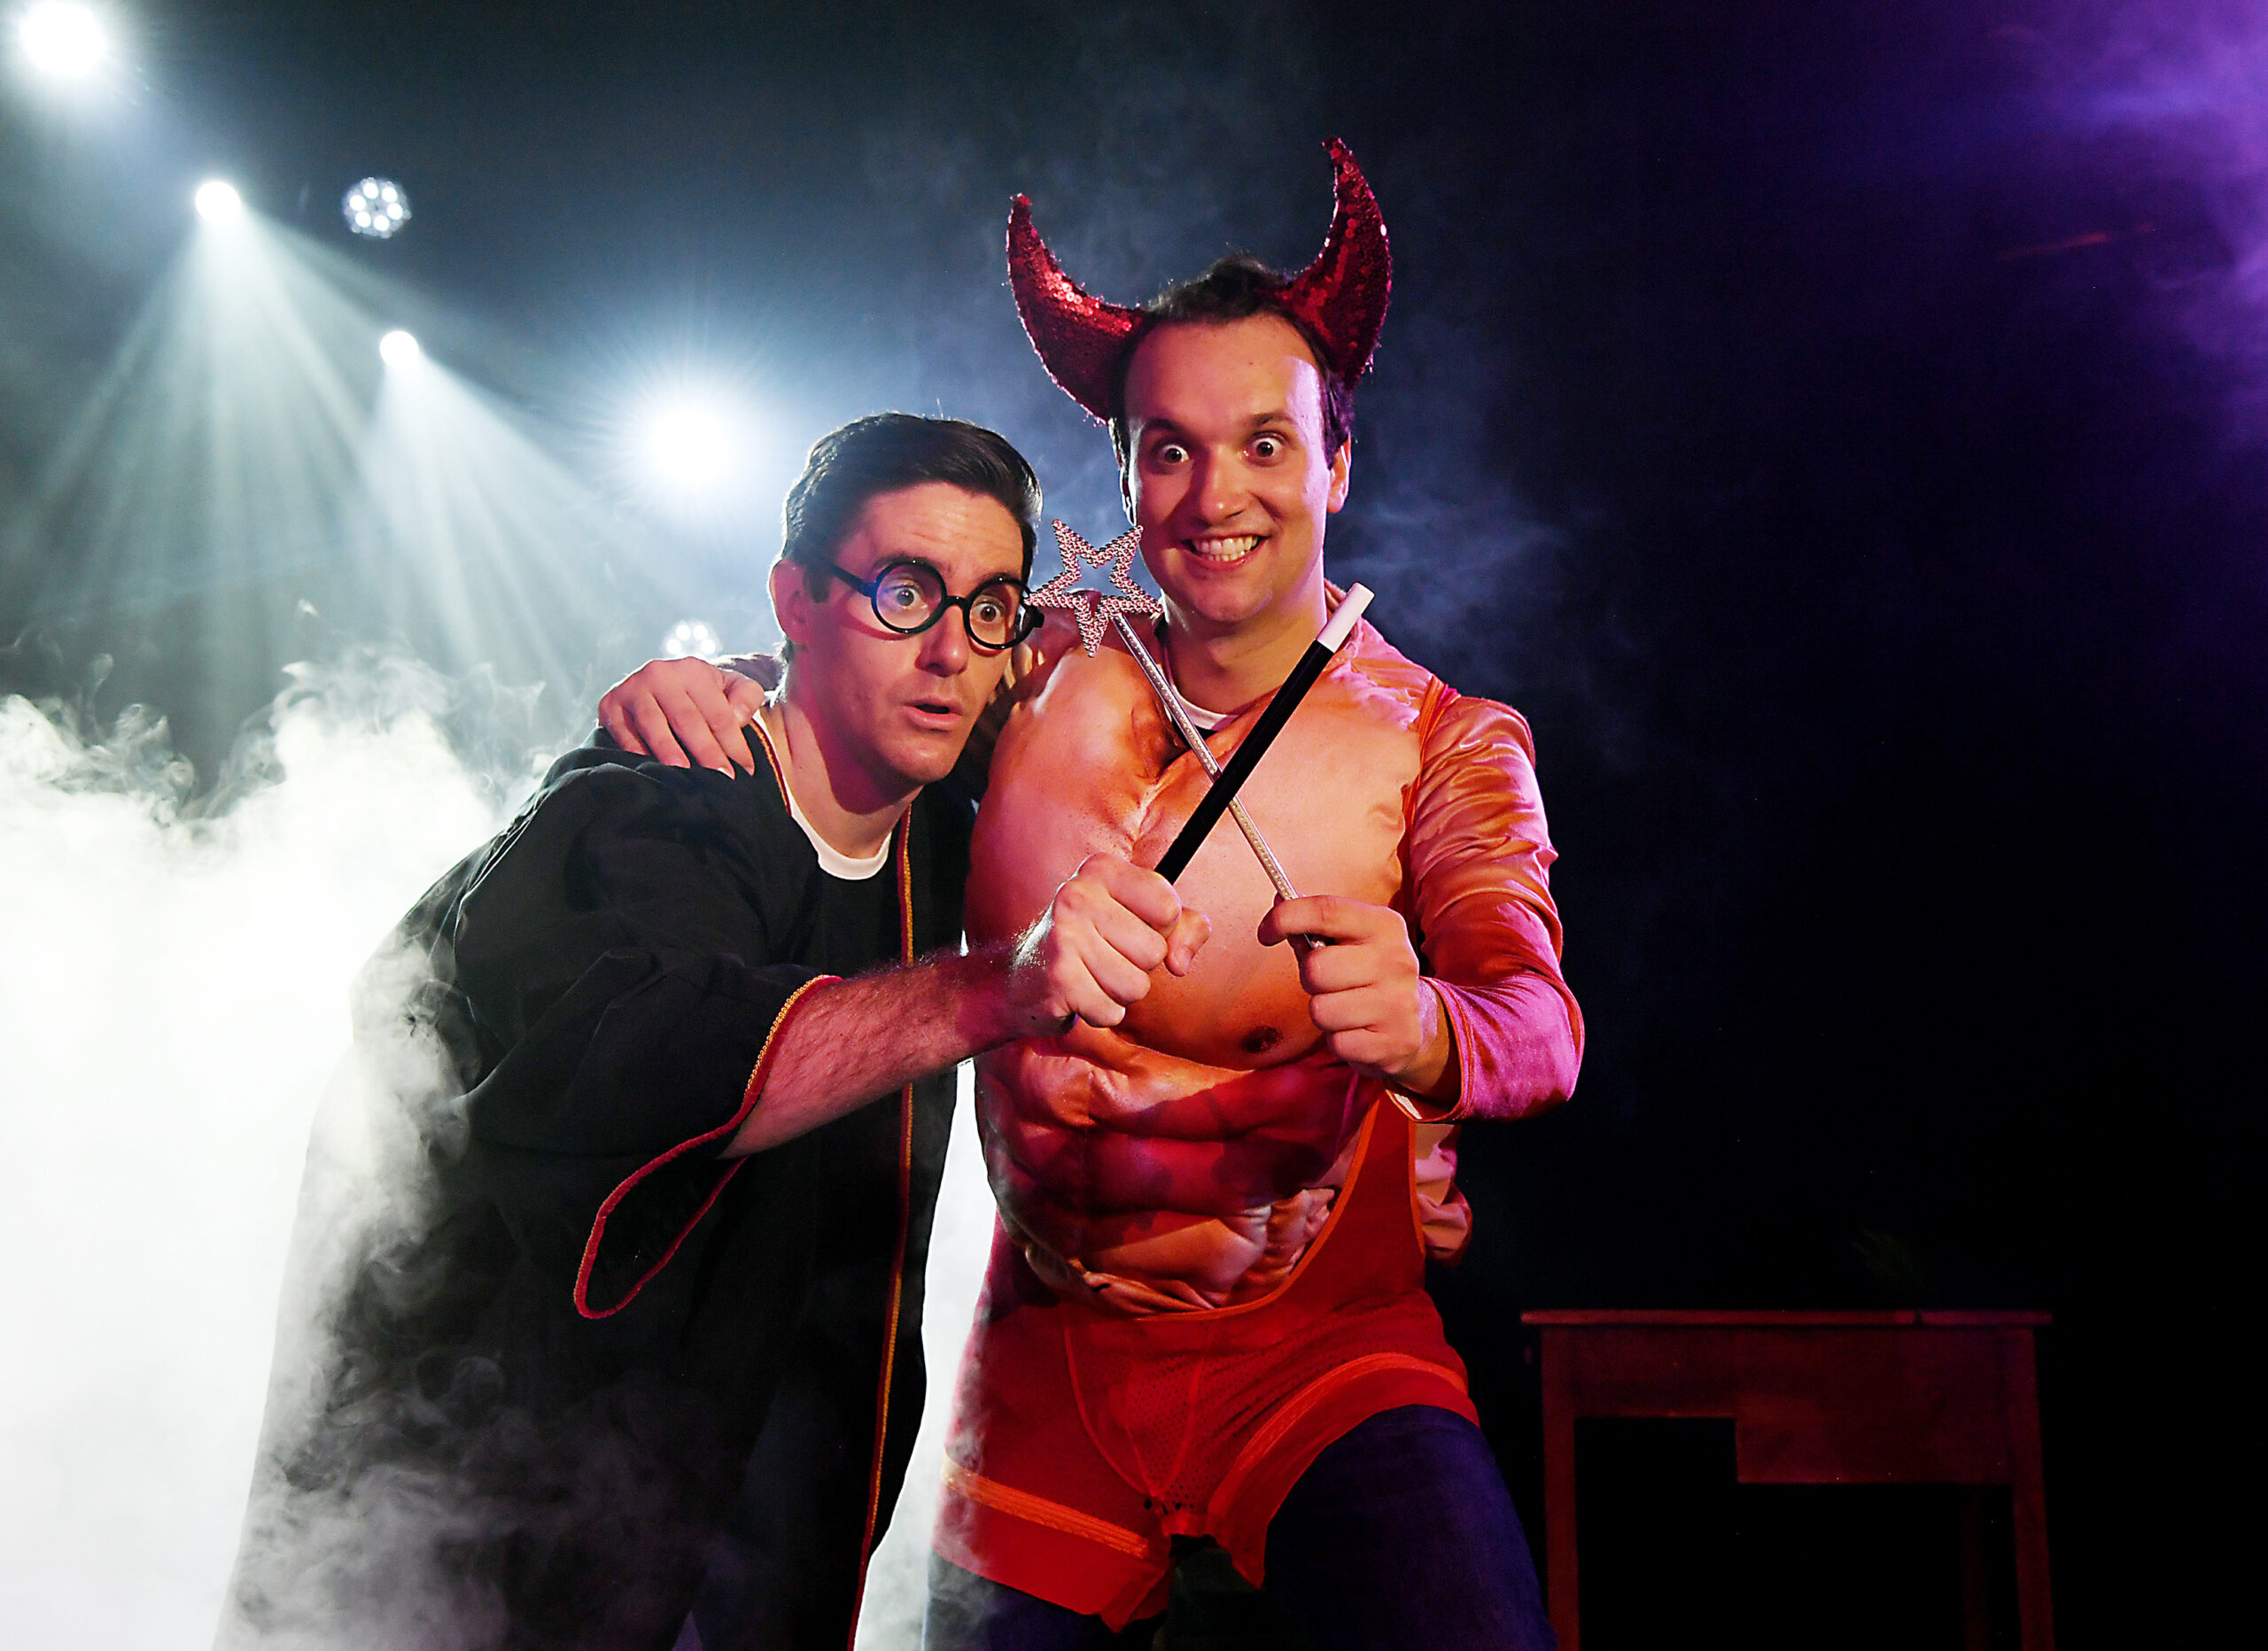 """Acclaimed """"Potter Potter"""" – The Harry Potted Parody Re-Opens At Bally's Las Vegas"""